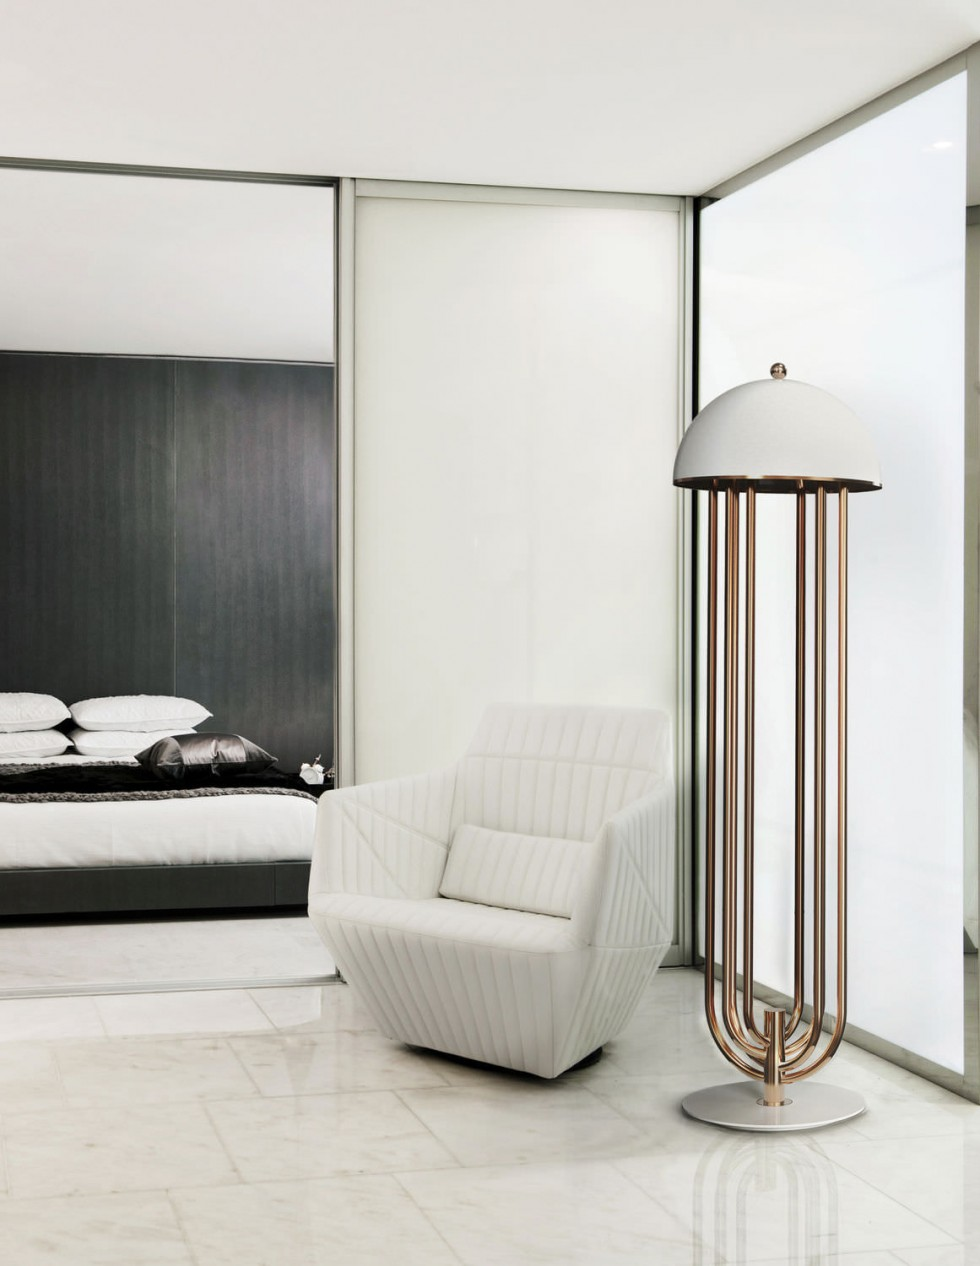 A guide to select the perfect floor lamp for your bedroom delightfull floor lamp A guide to select the perfect floor lamp for your bedroom A guide to select the perfect floor lamp for your bedroom delightfull e1460625613643